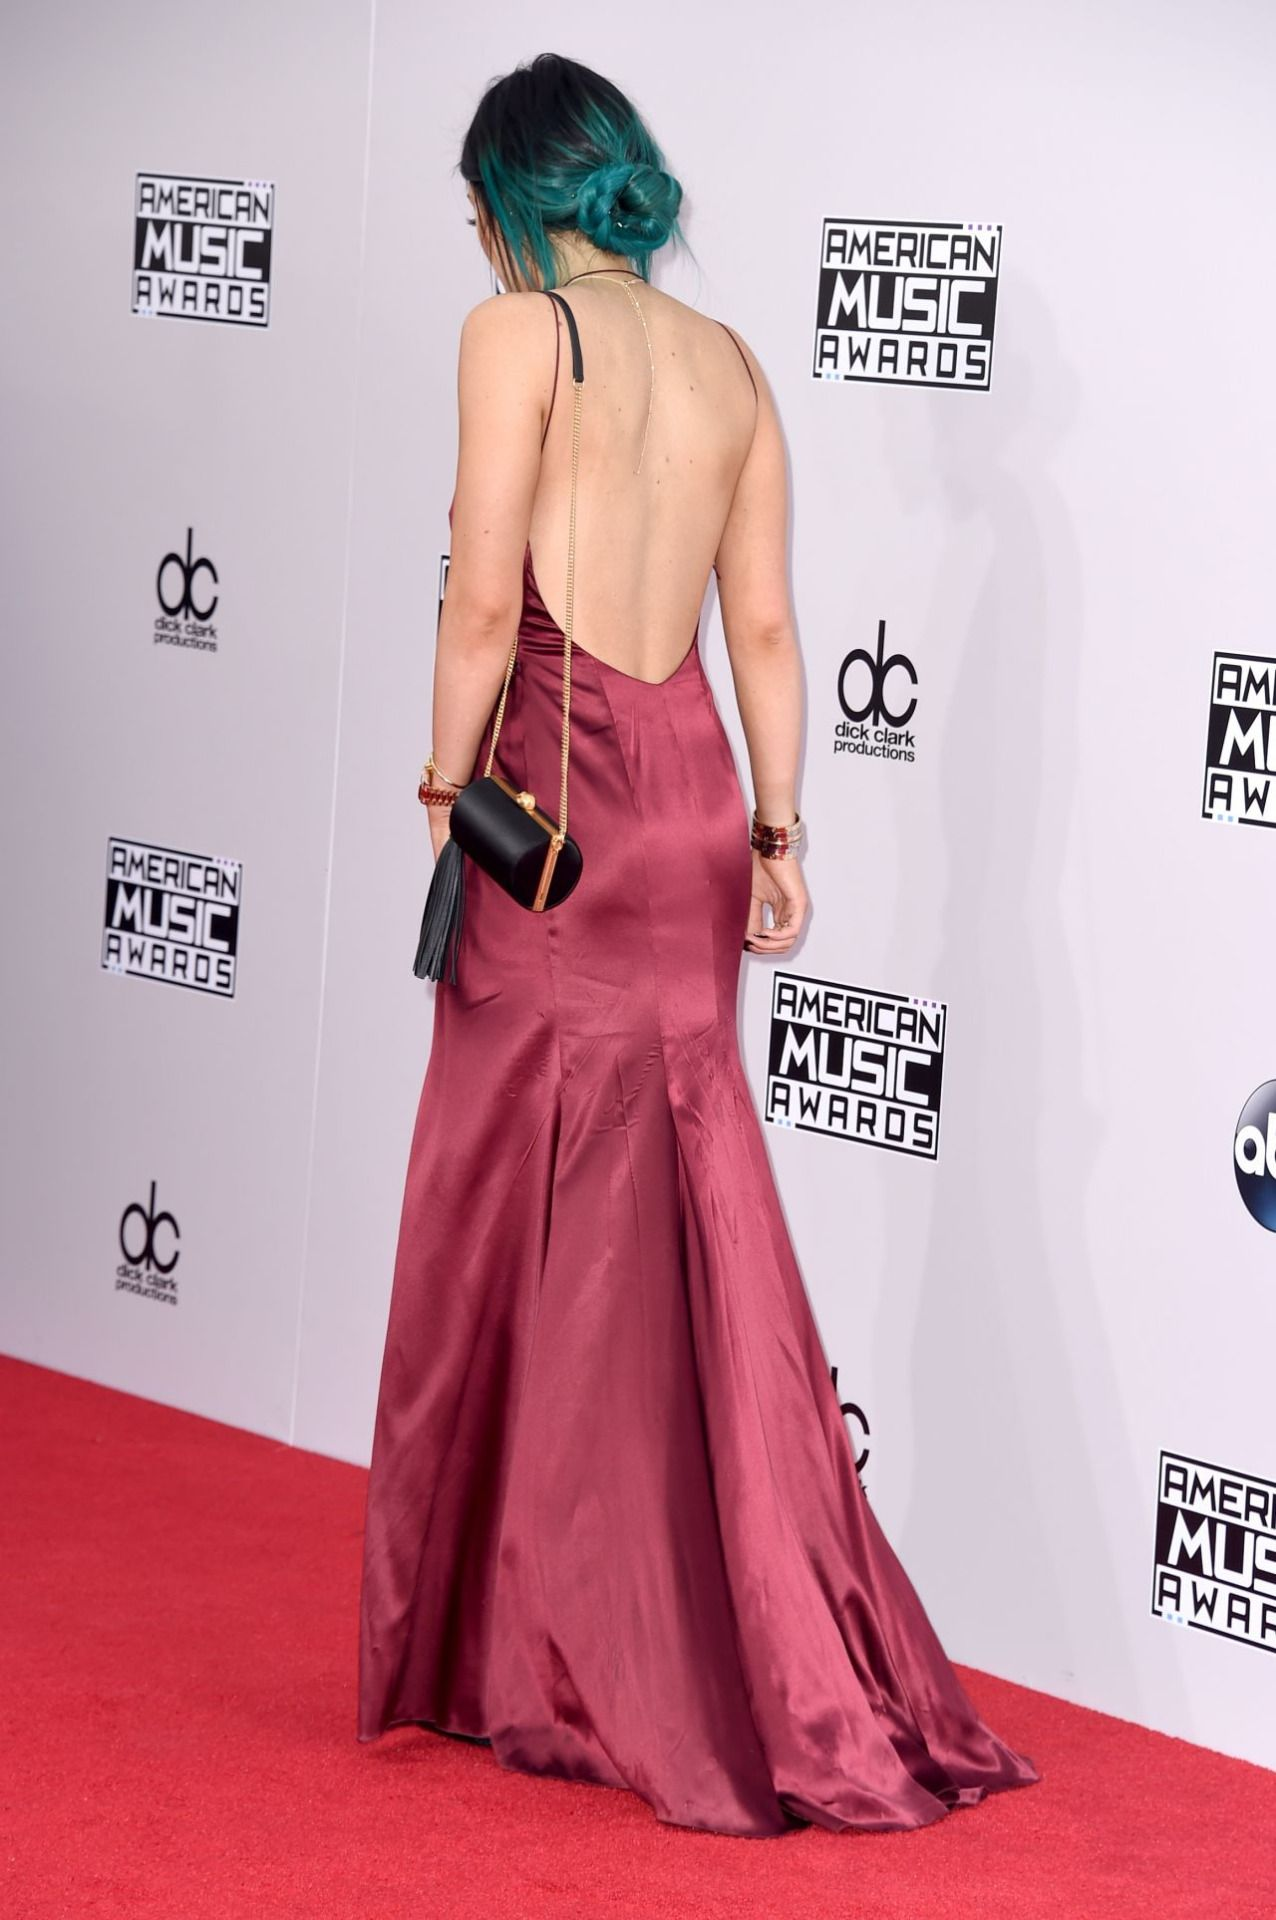 Kylie Jenner Annual American Music Awards 2014 Los Angeles #Kylie ...